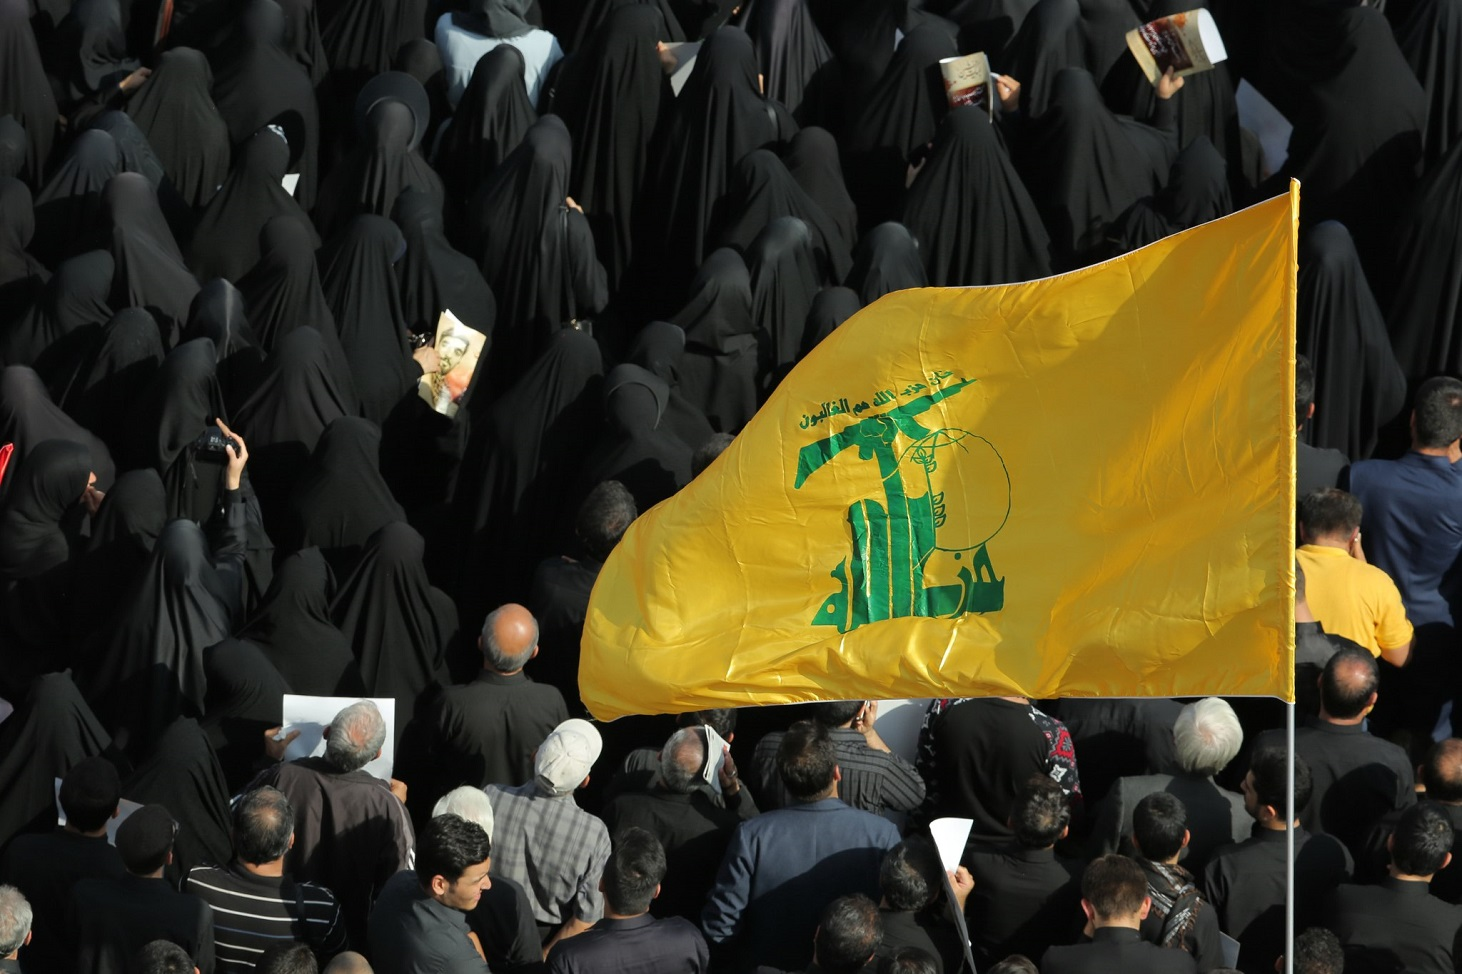 funeral_of_mohsen_hojaji_in_tehran_09